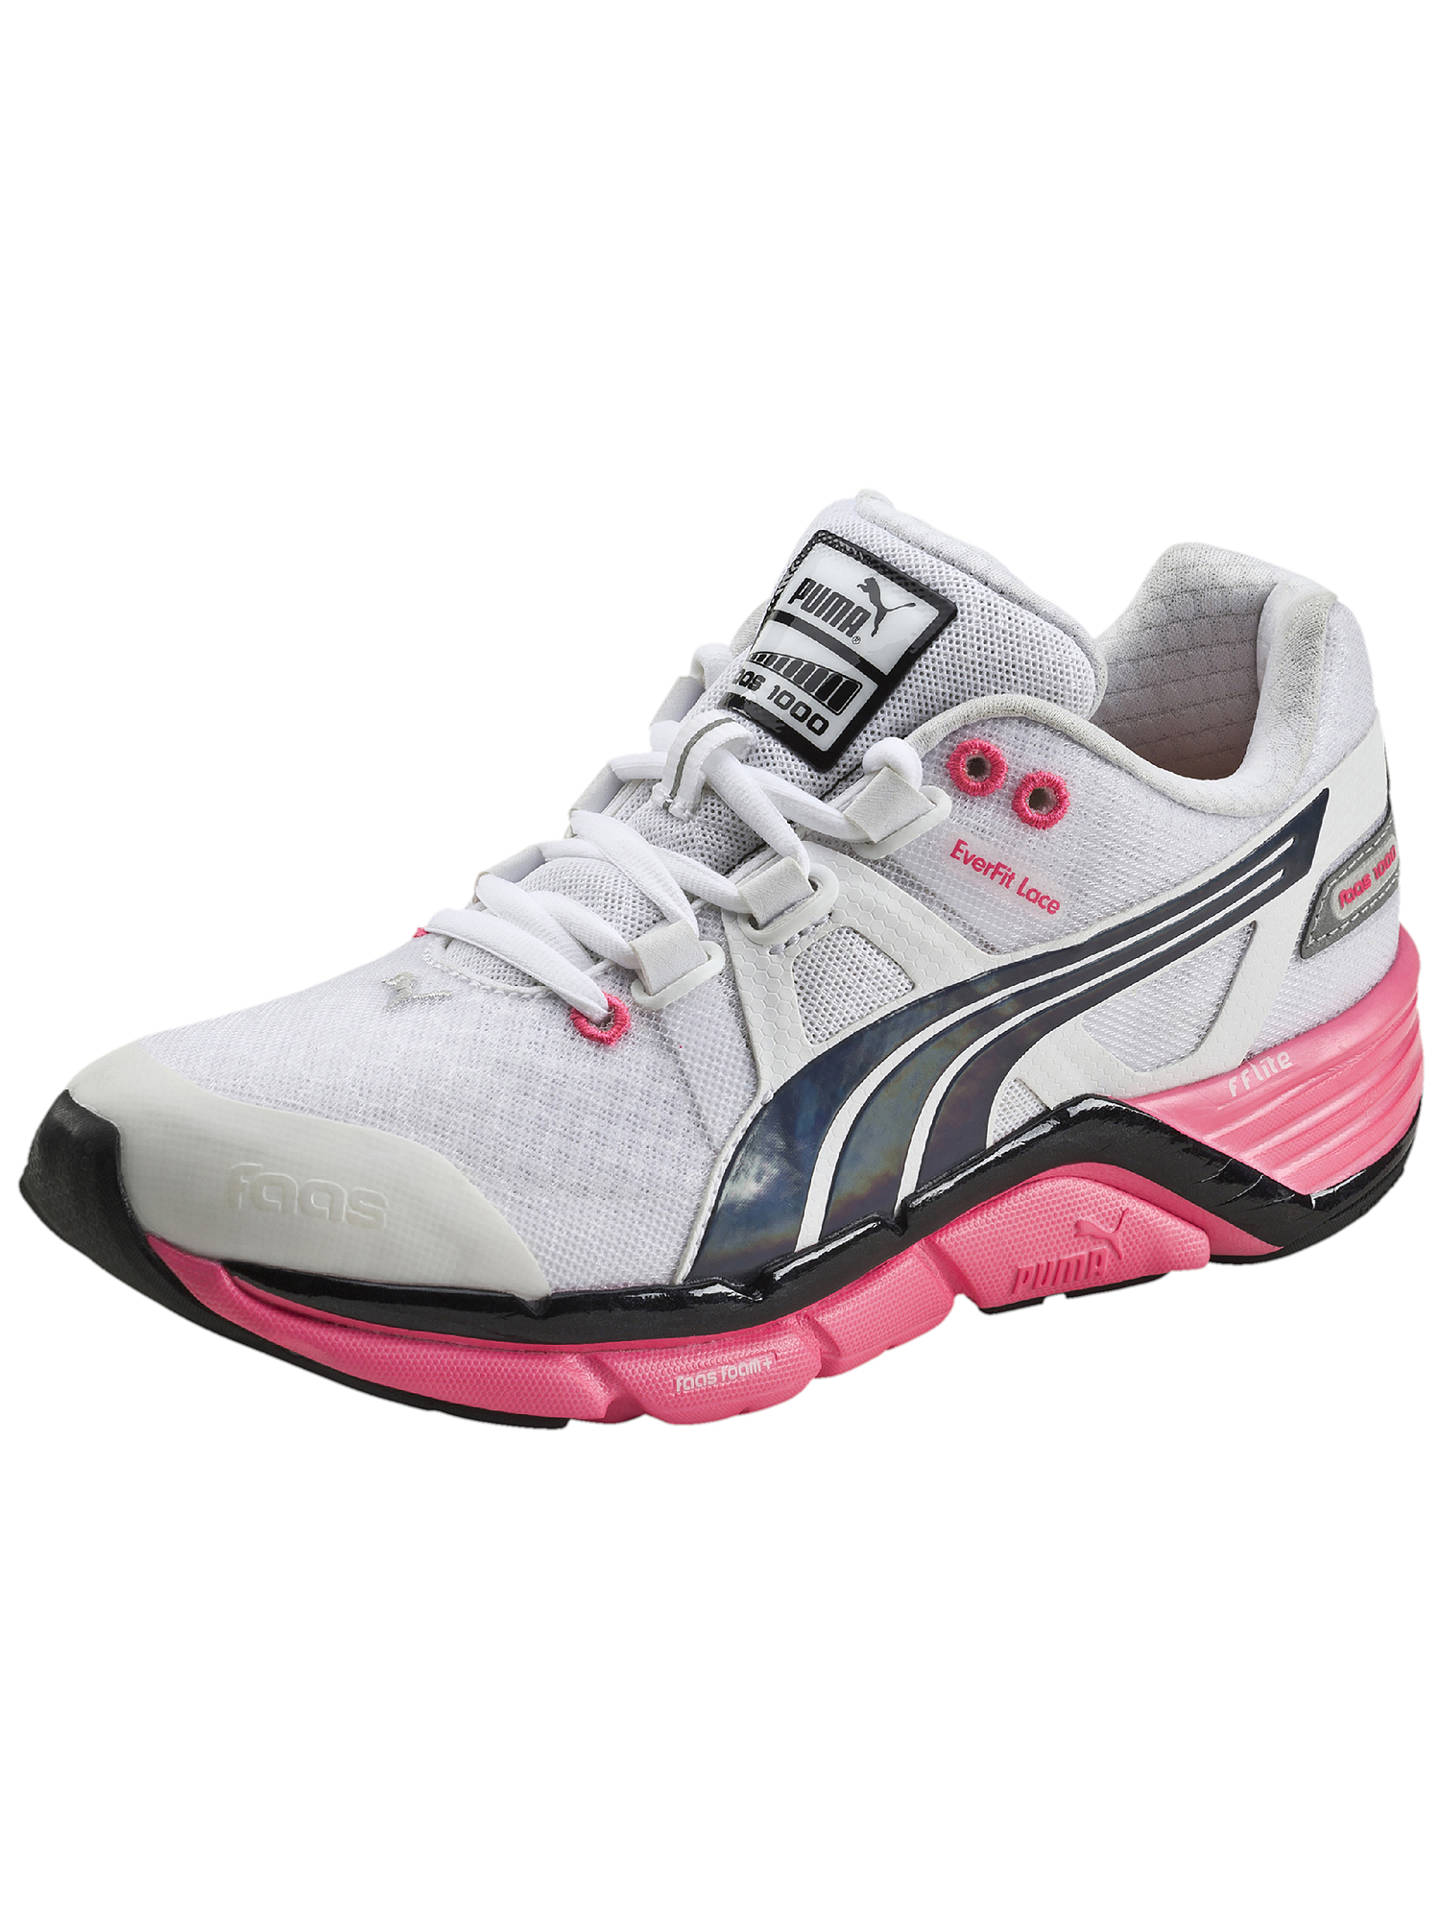 Puma Faas 1000 V1 5 Women S Running Shoes White Pink At John Lewis